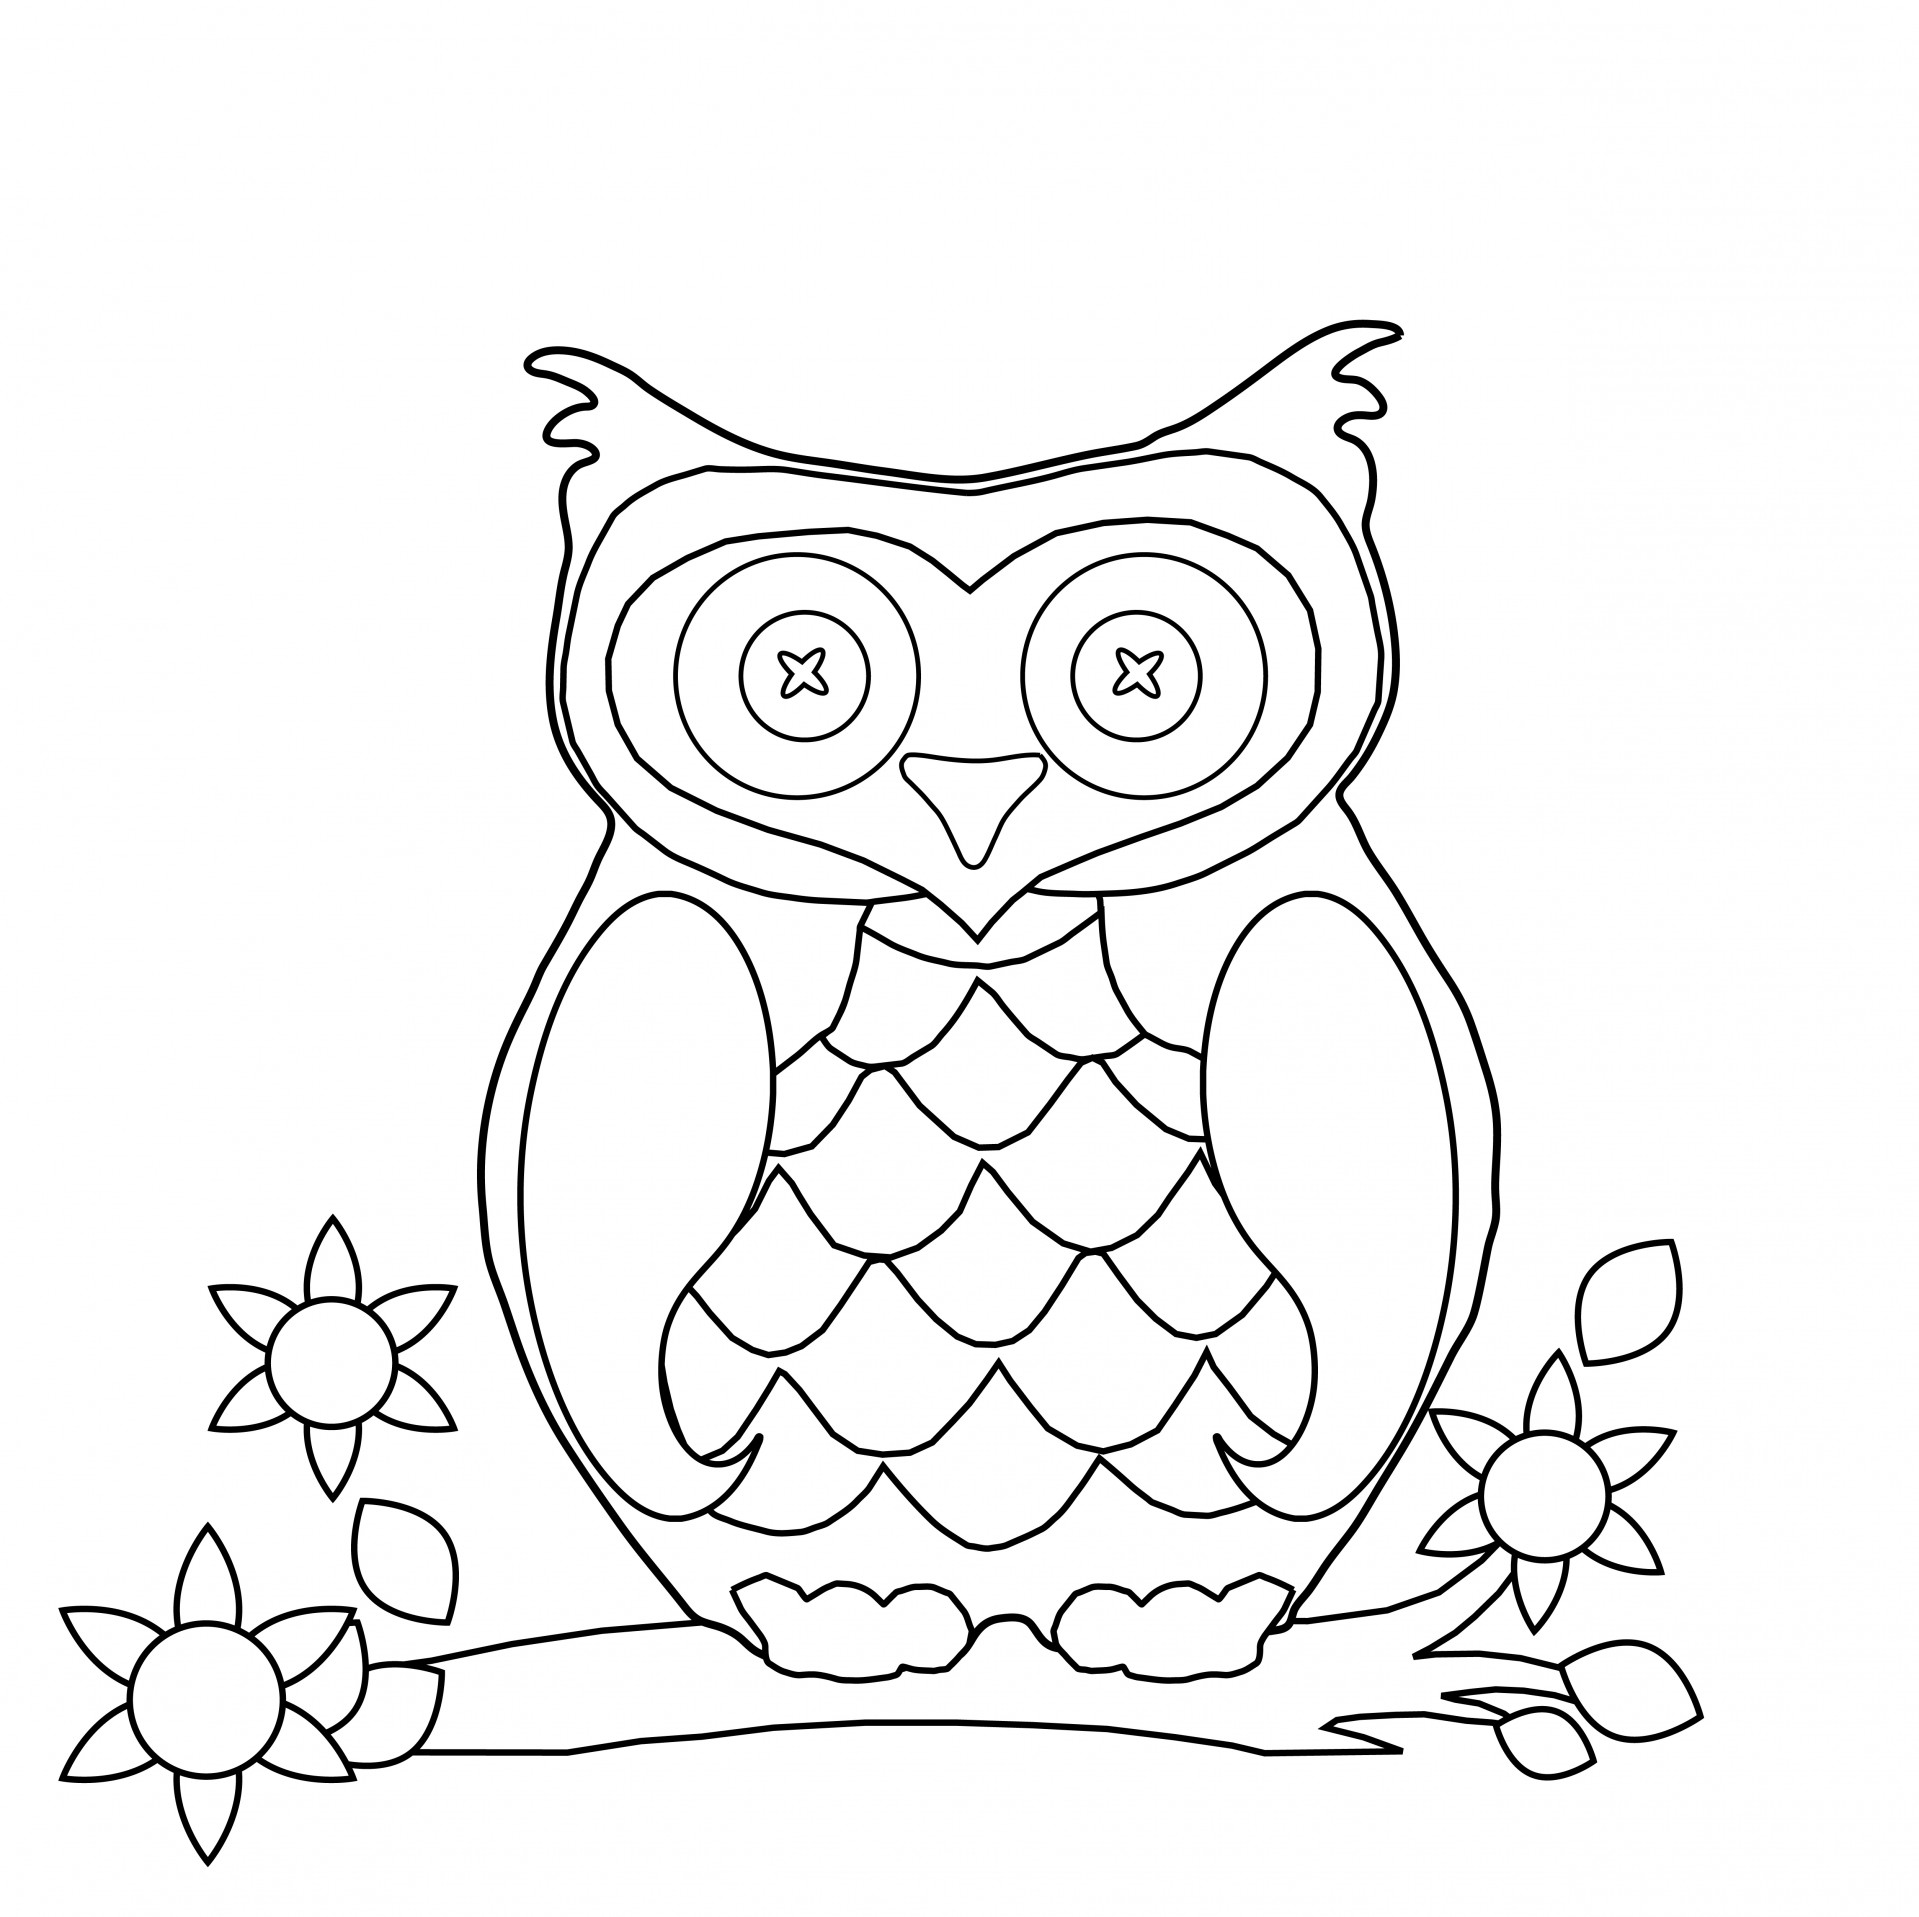 a picture to color owl coloring pages for adults free detailed owl coloring a picture color to